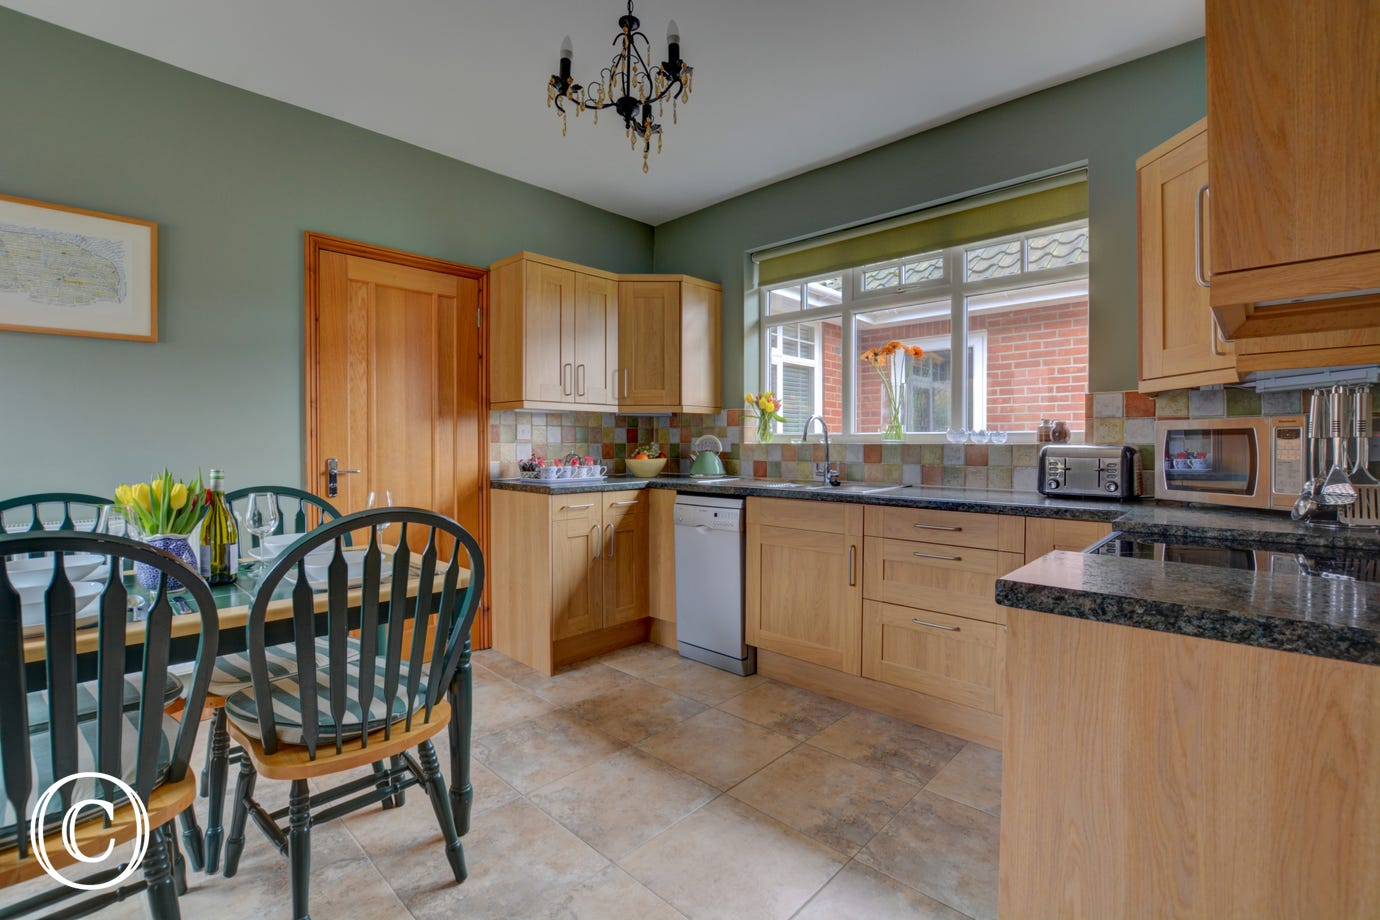 Kitchen with table and chairs, electric oven and induction hob.